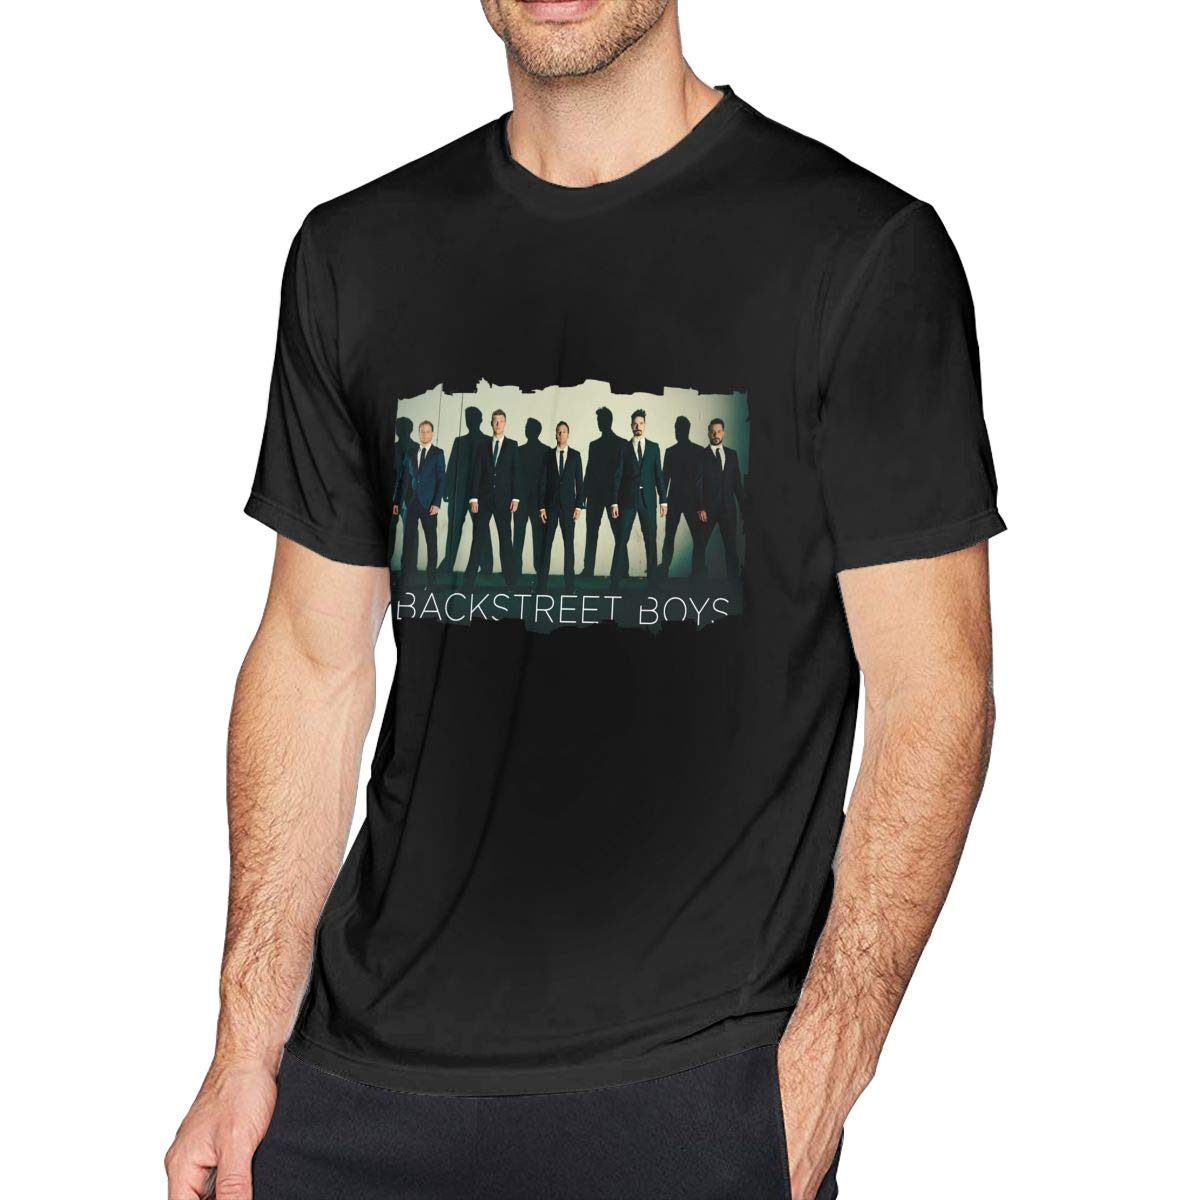 Hwxzviodfjg Men Backstreet Boys Shirts